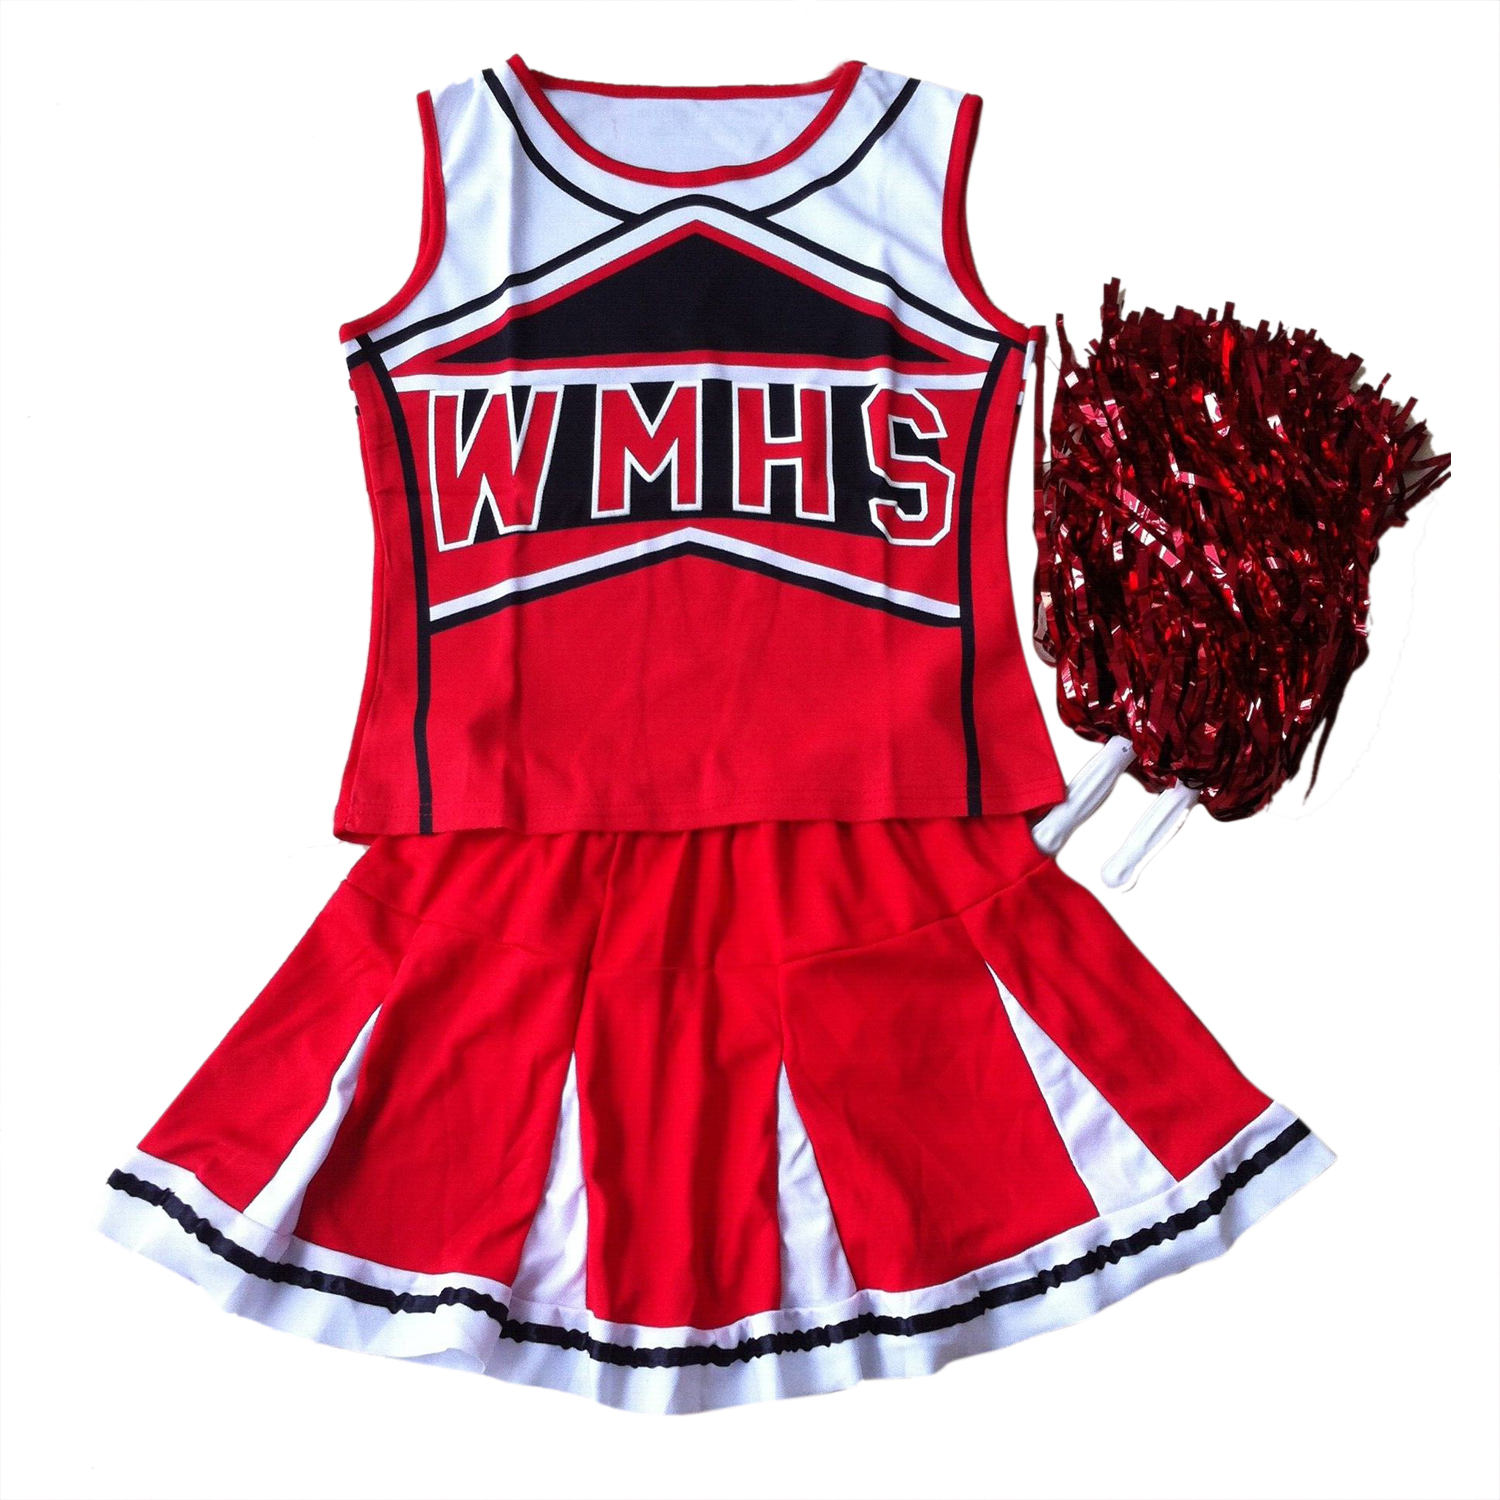 ELOS-Tank top Petticoat Pom cheerleader cheer leaders S (30-32) 2 piece suit new red costume ...